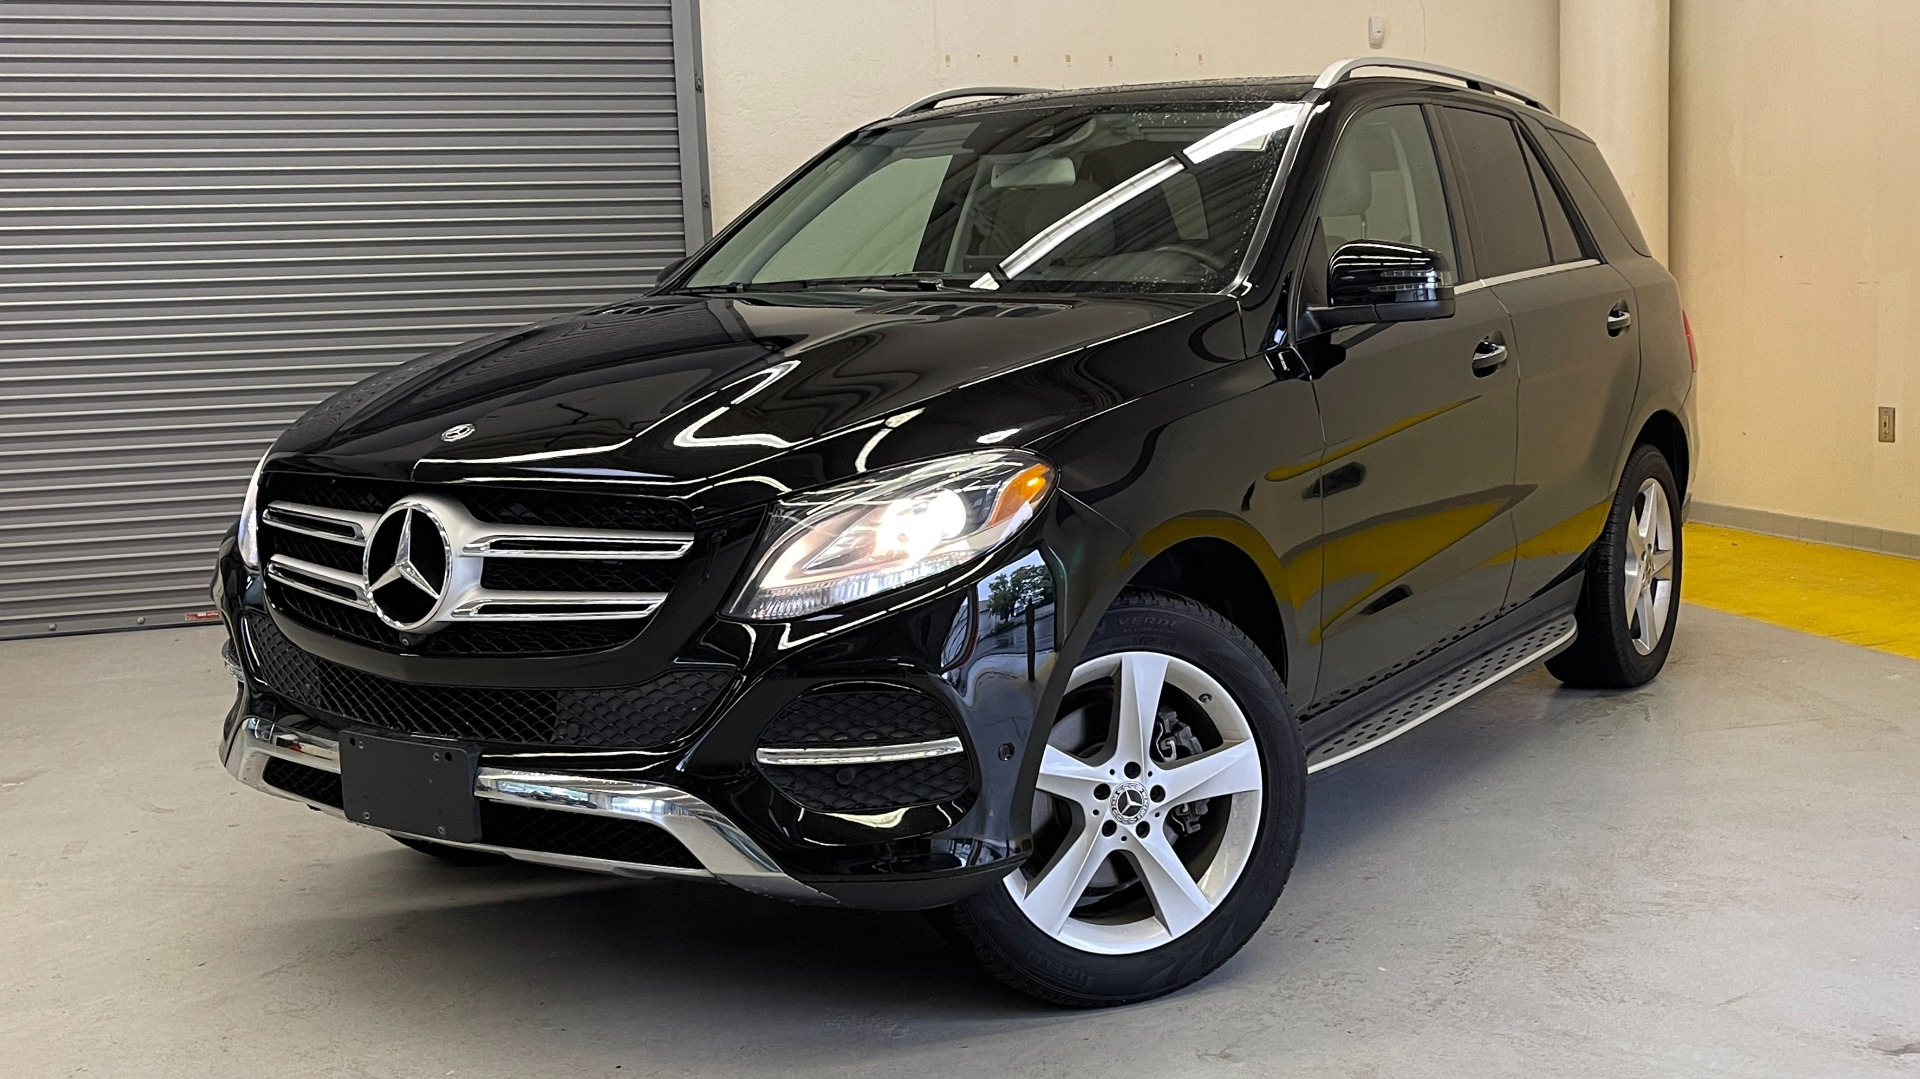 Used 2018 Mercedes-Benz GLE 350 4MATIC PREMIUM / NAV / PARK PILOT / BSA / H/K SND / SURROUND VIEW for sale $40,995 at Formula Imports in Charlotte NC 28227 1